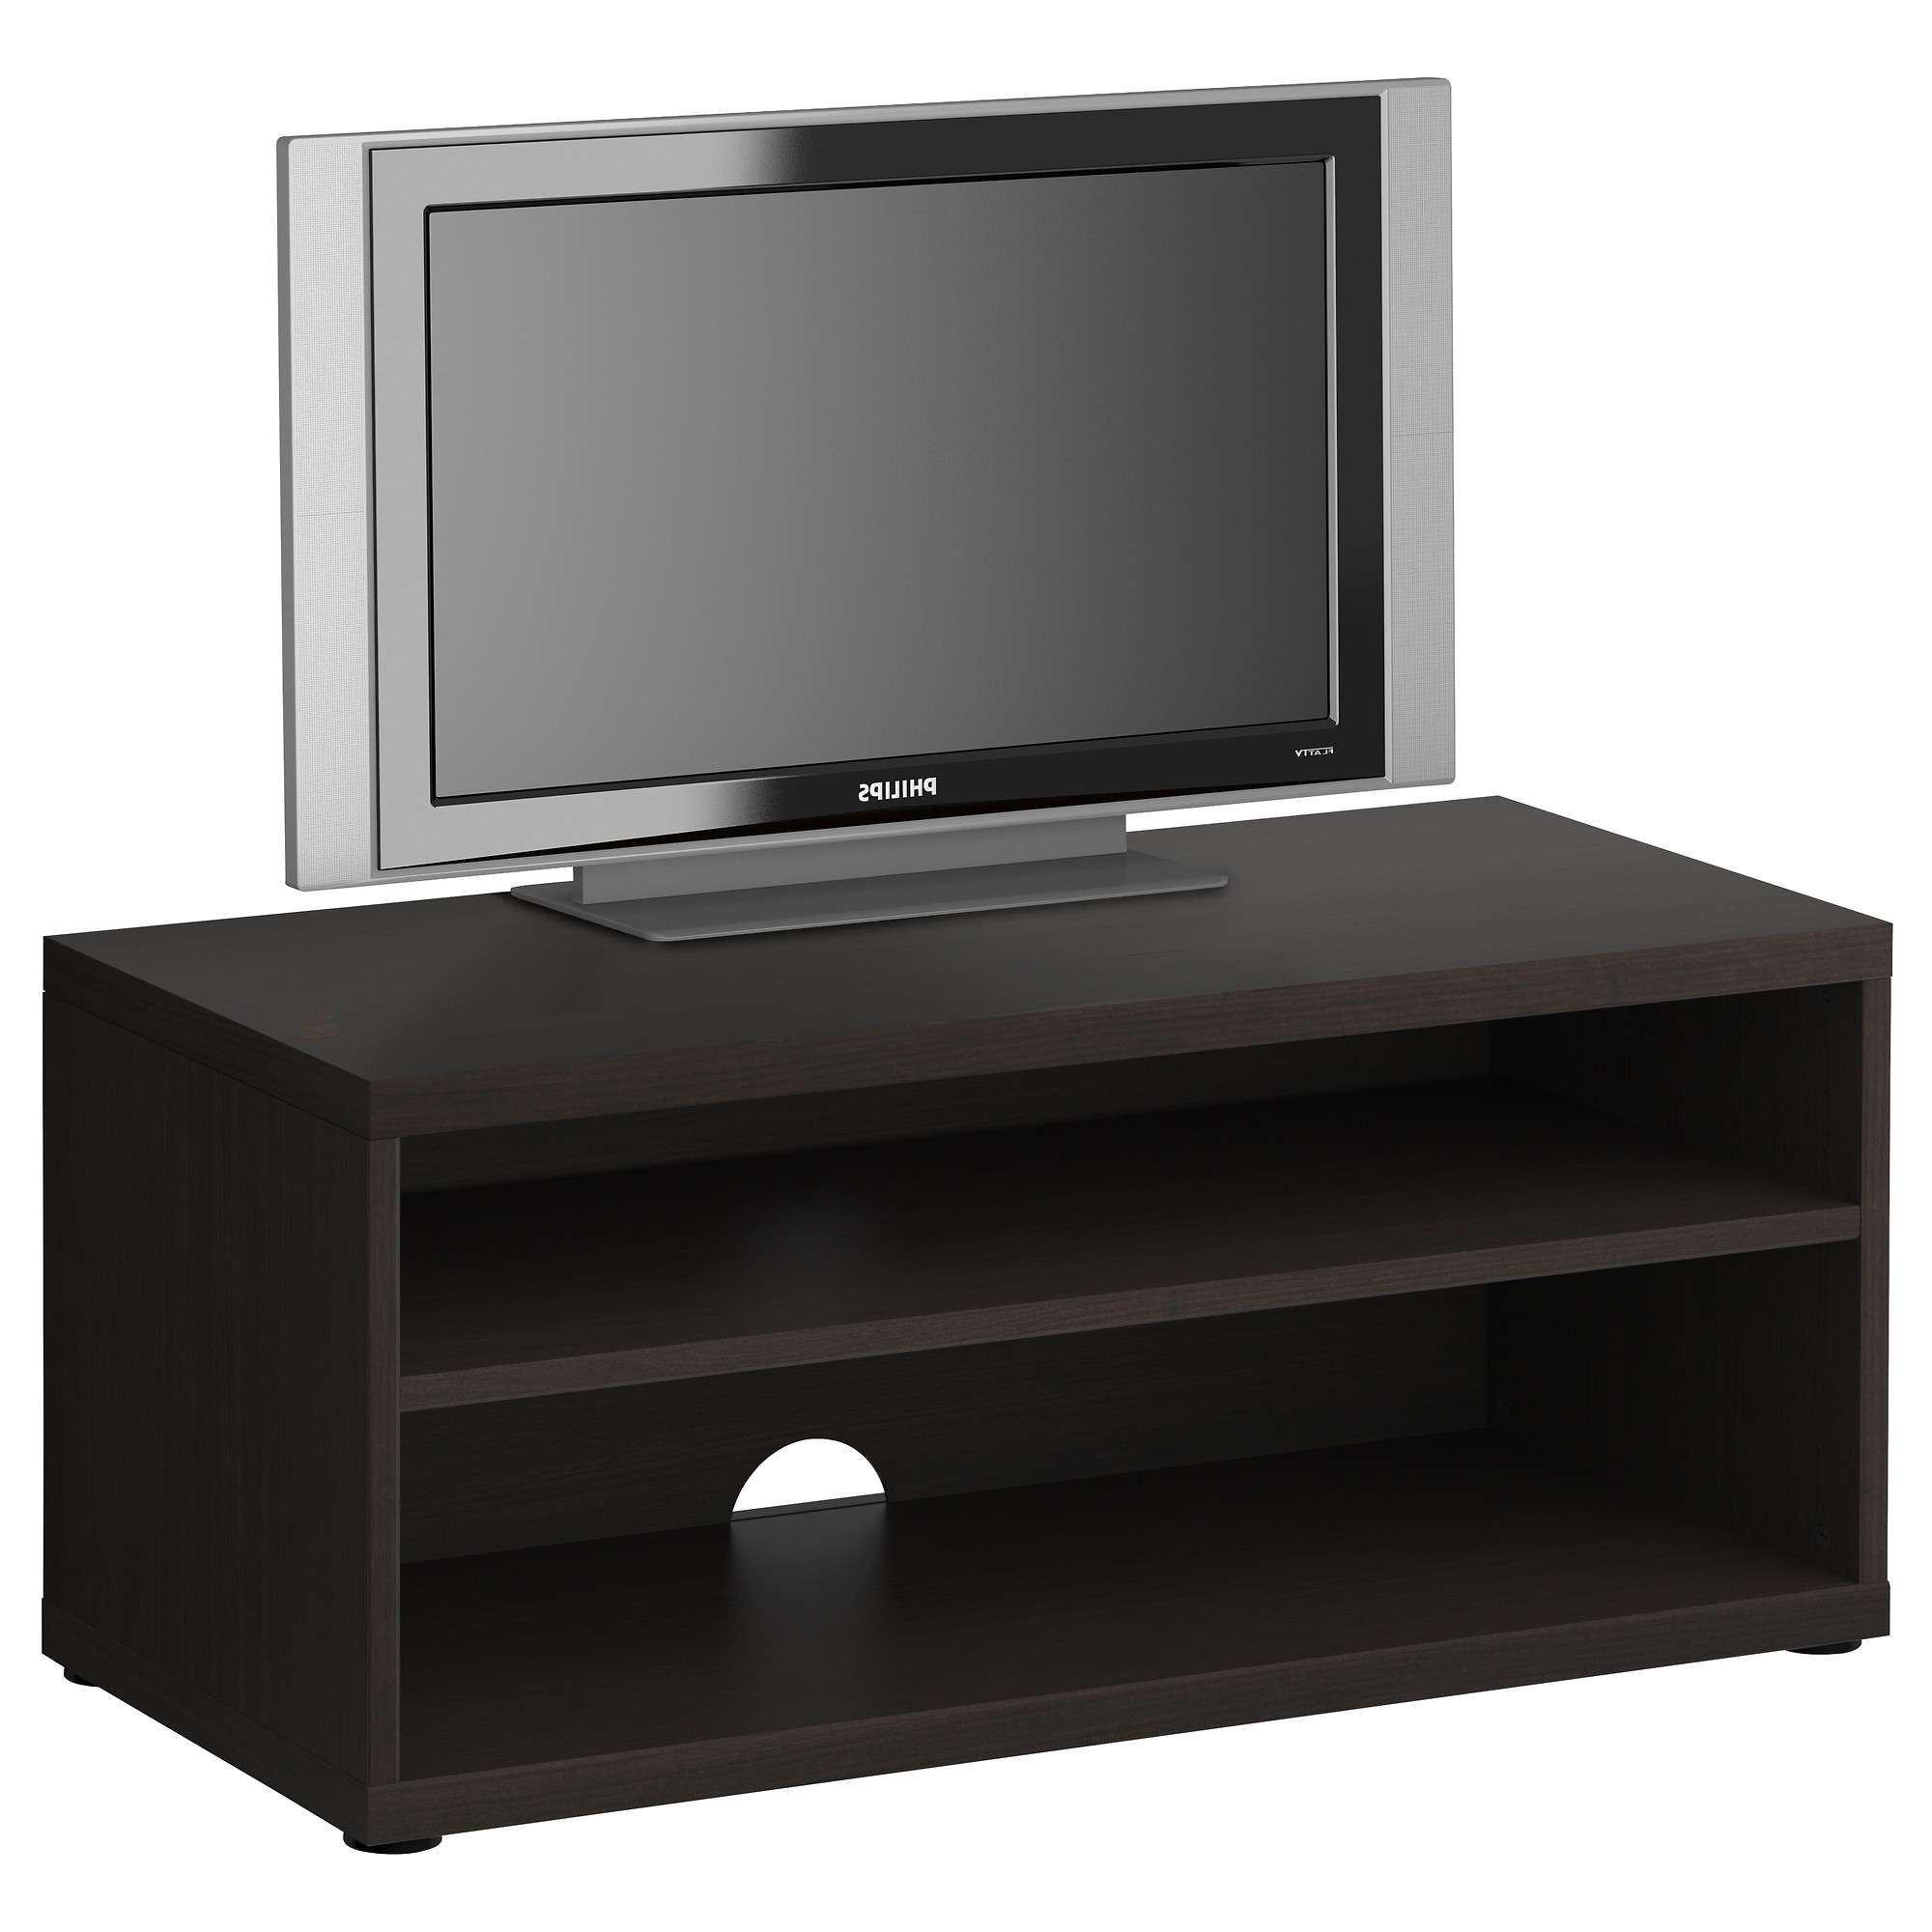 Peculiar Mosjo Tv Unit Blackbrown For Small Tv Stands Ikea Toger With Regard To Small Black Tv Cabinets (View 12 of 20)